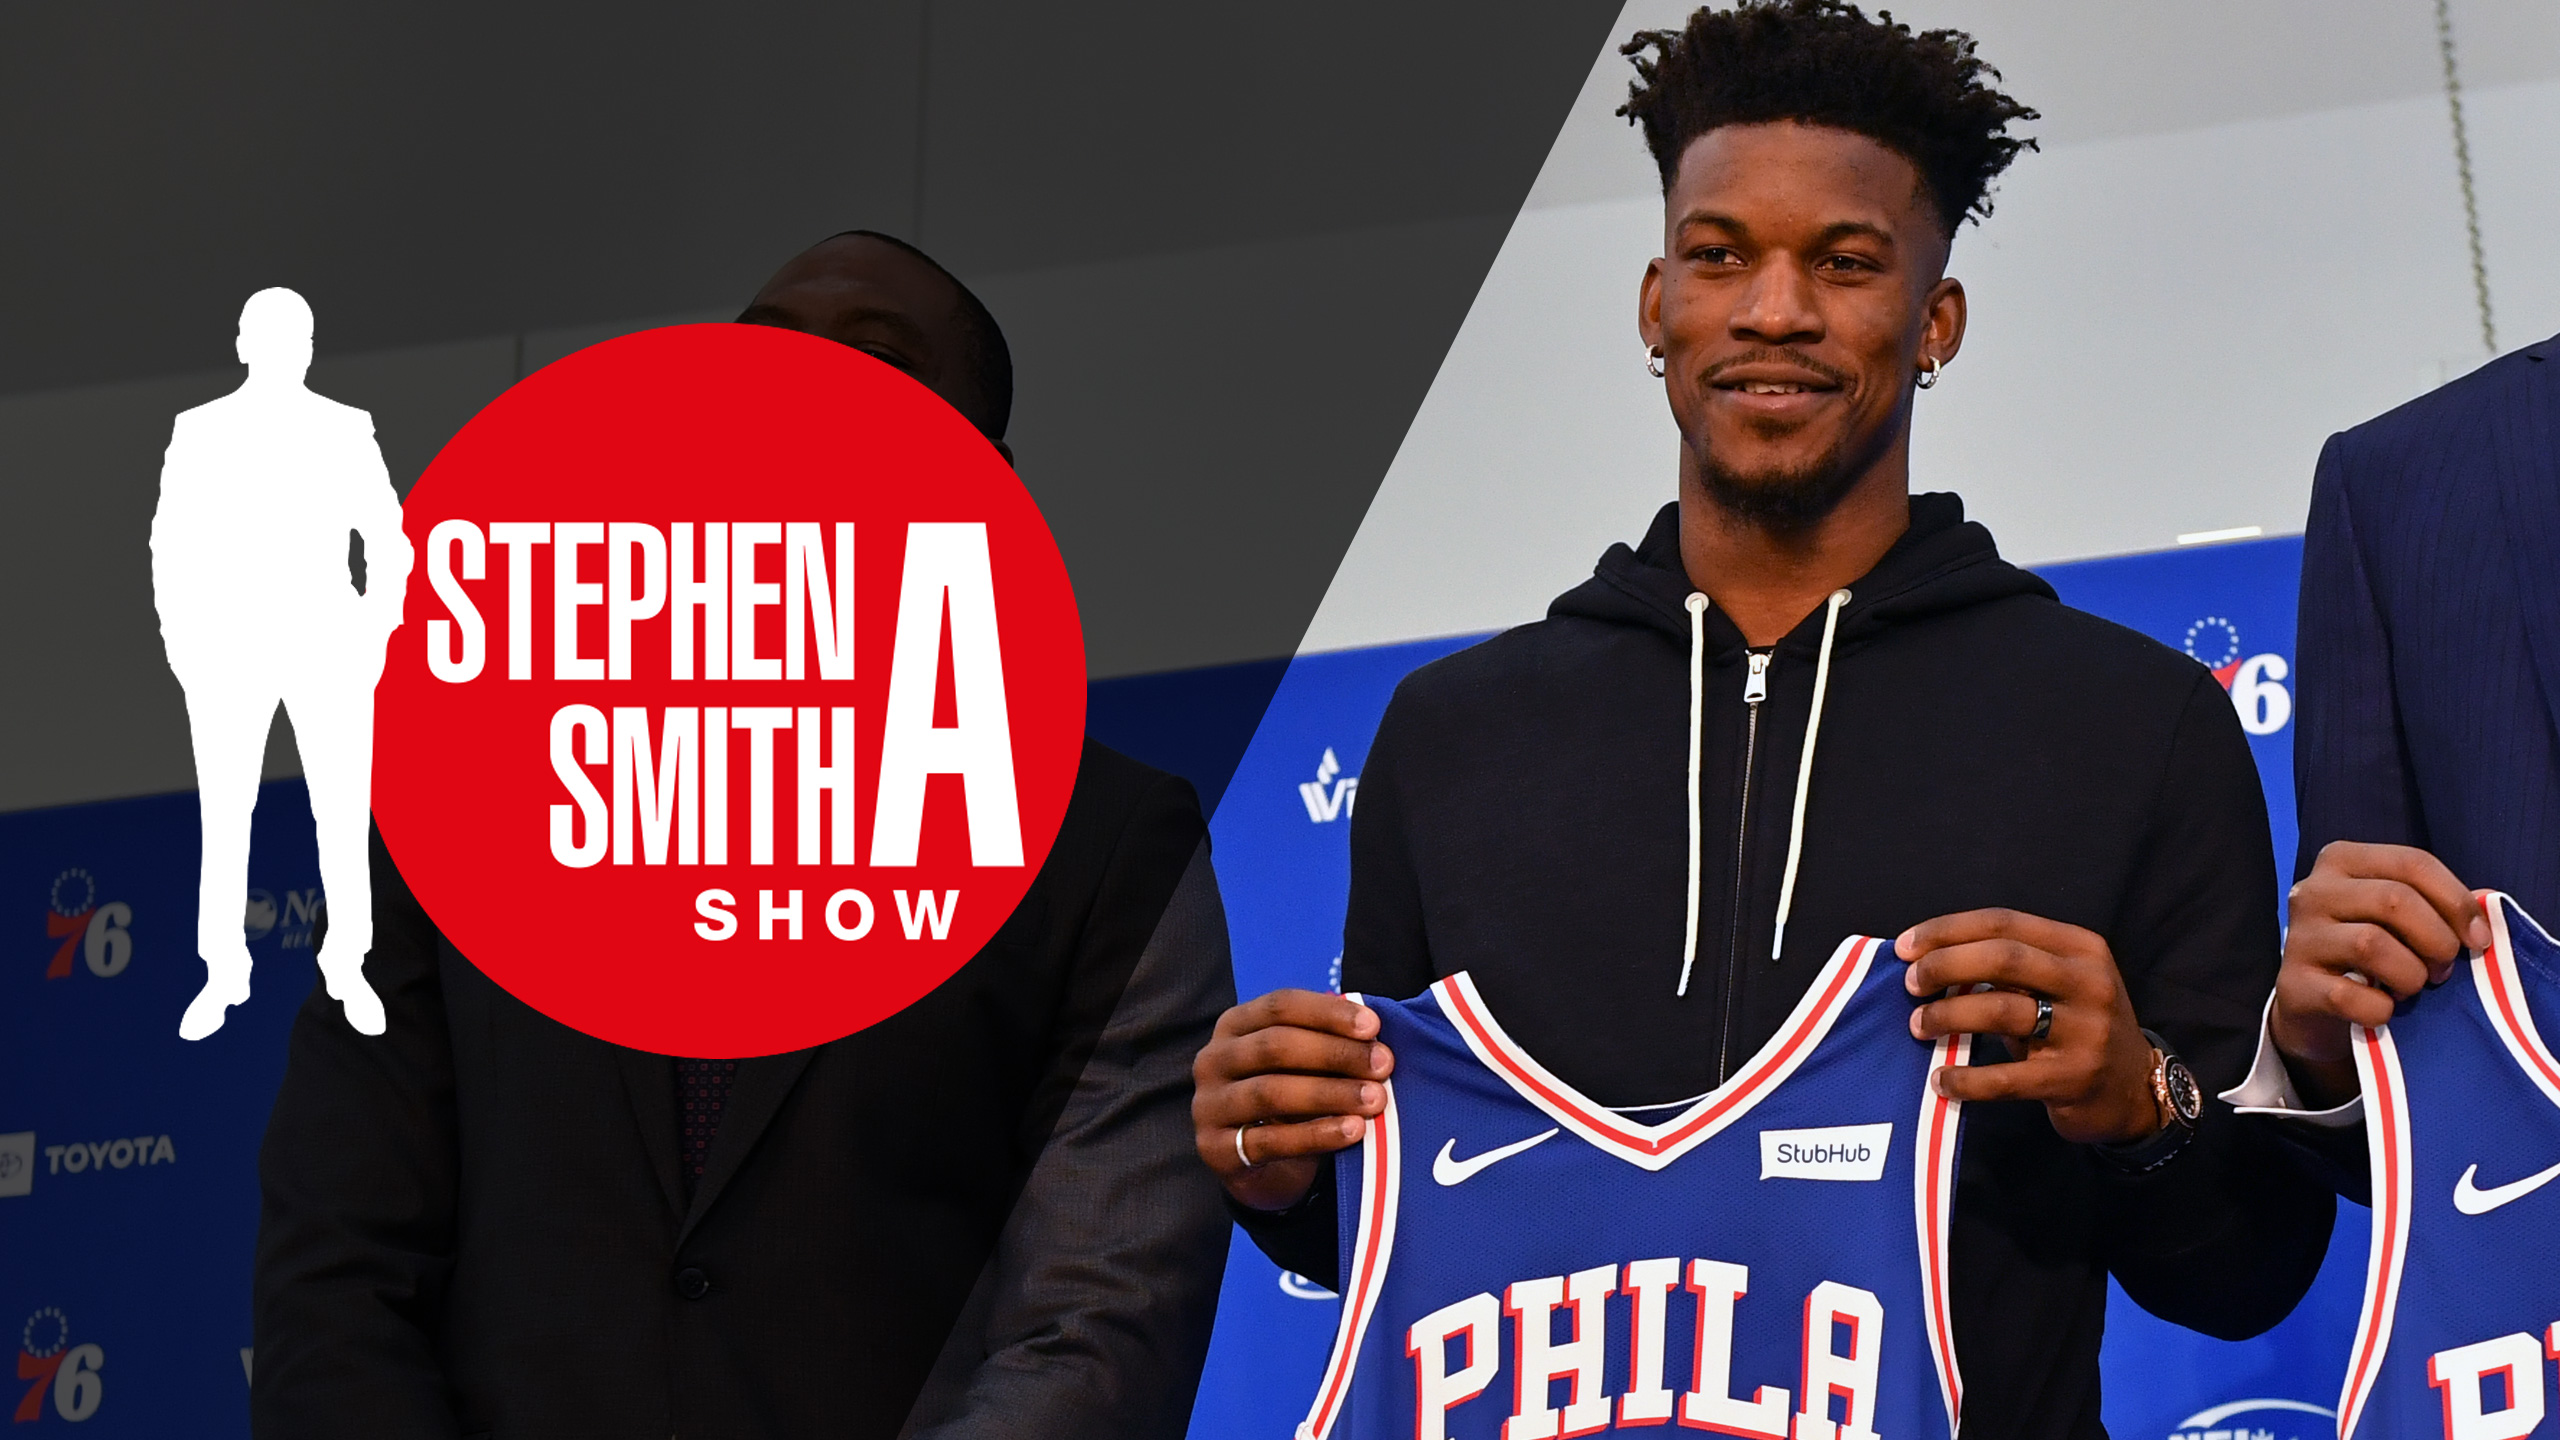 Wed, 11/14 - The Stephen A. Smith Show